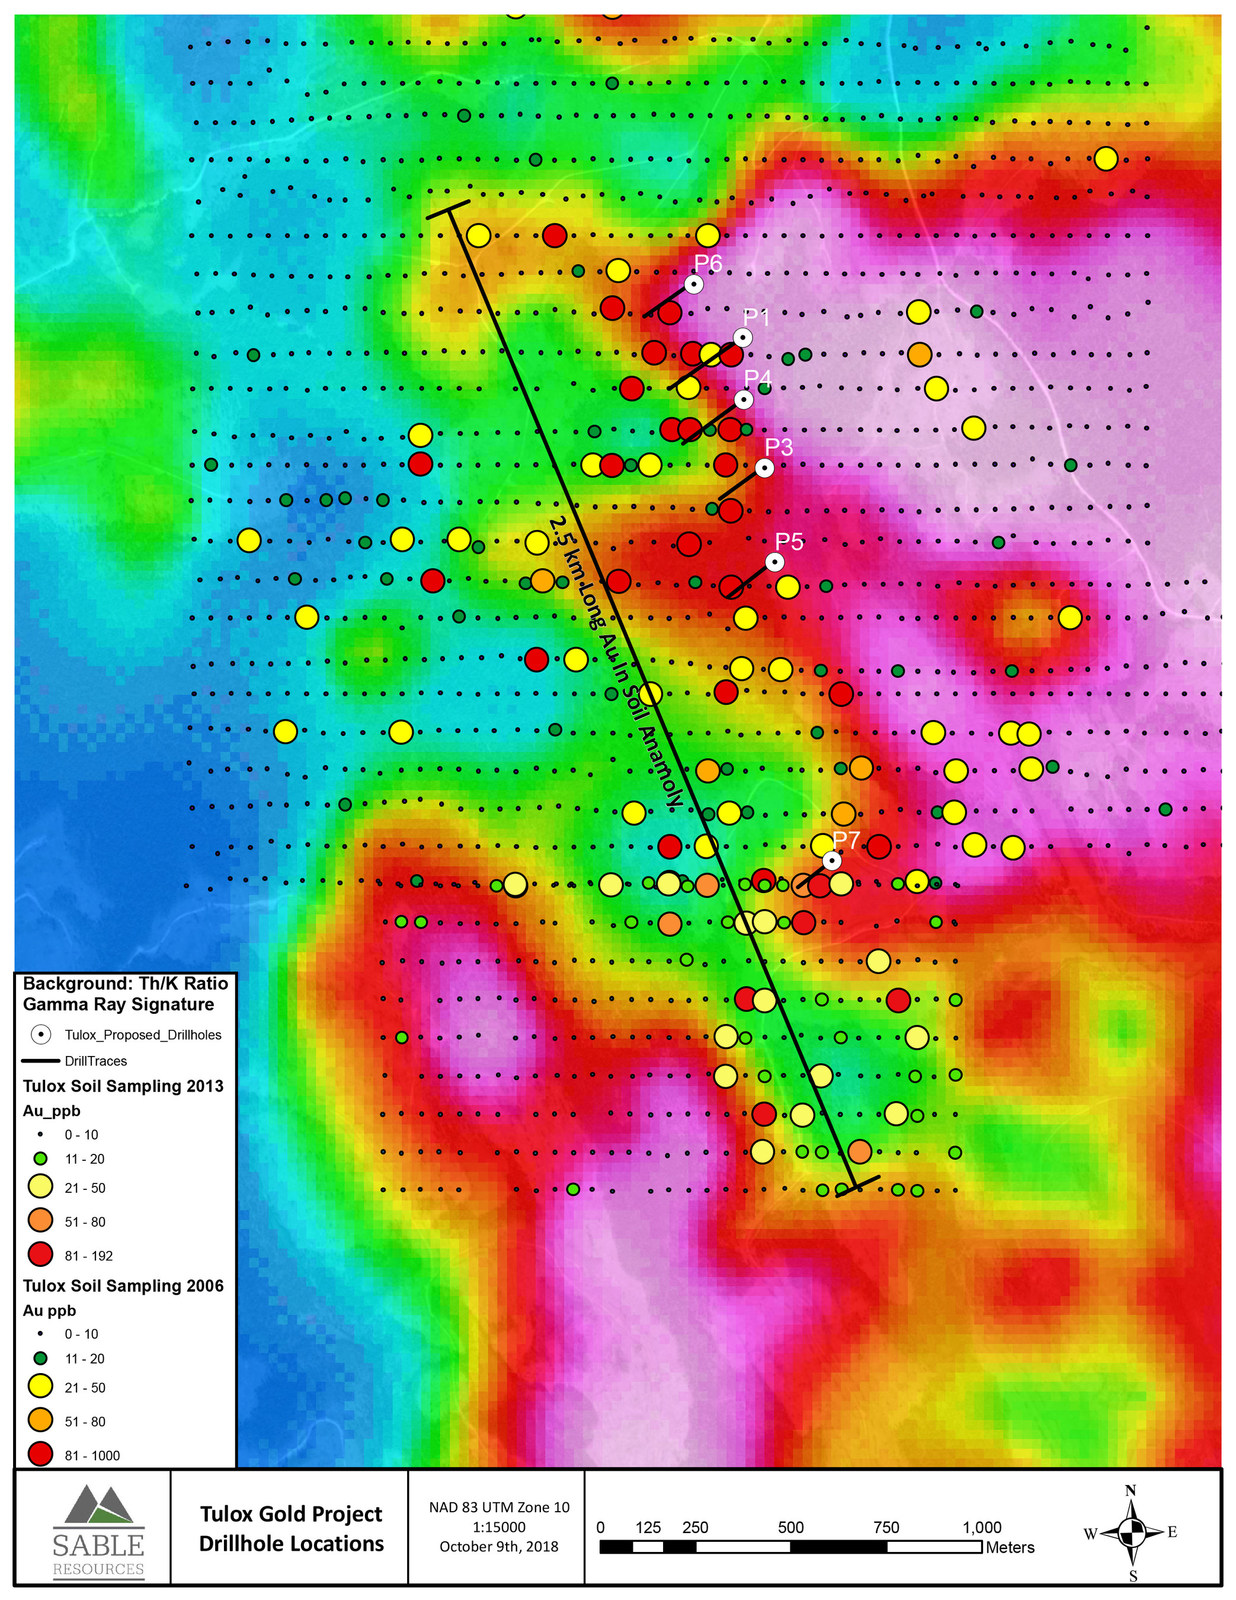 Tulox Gold Project Drillhole Locations